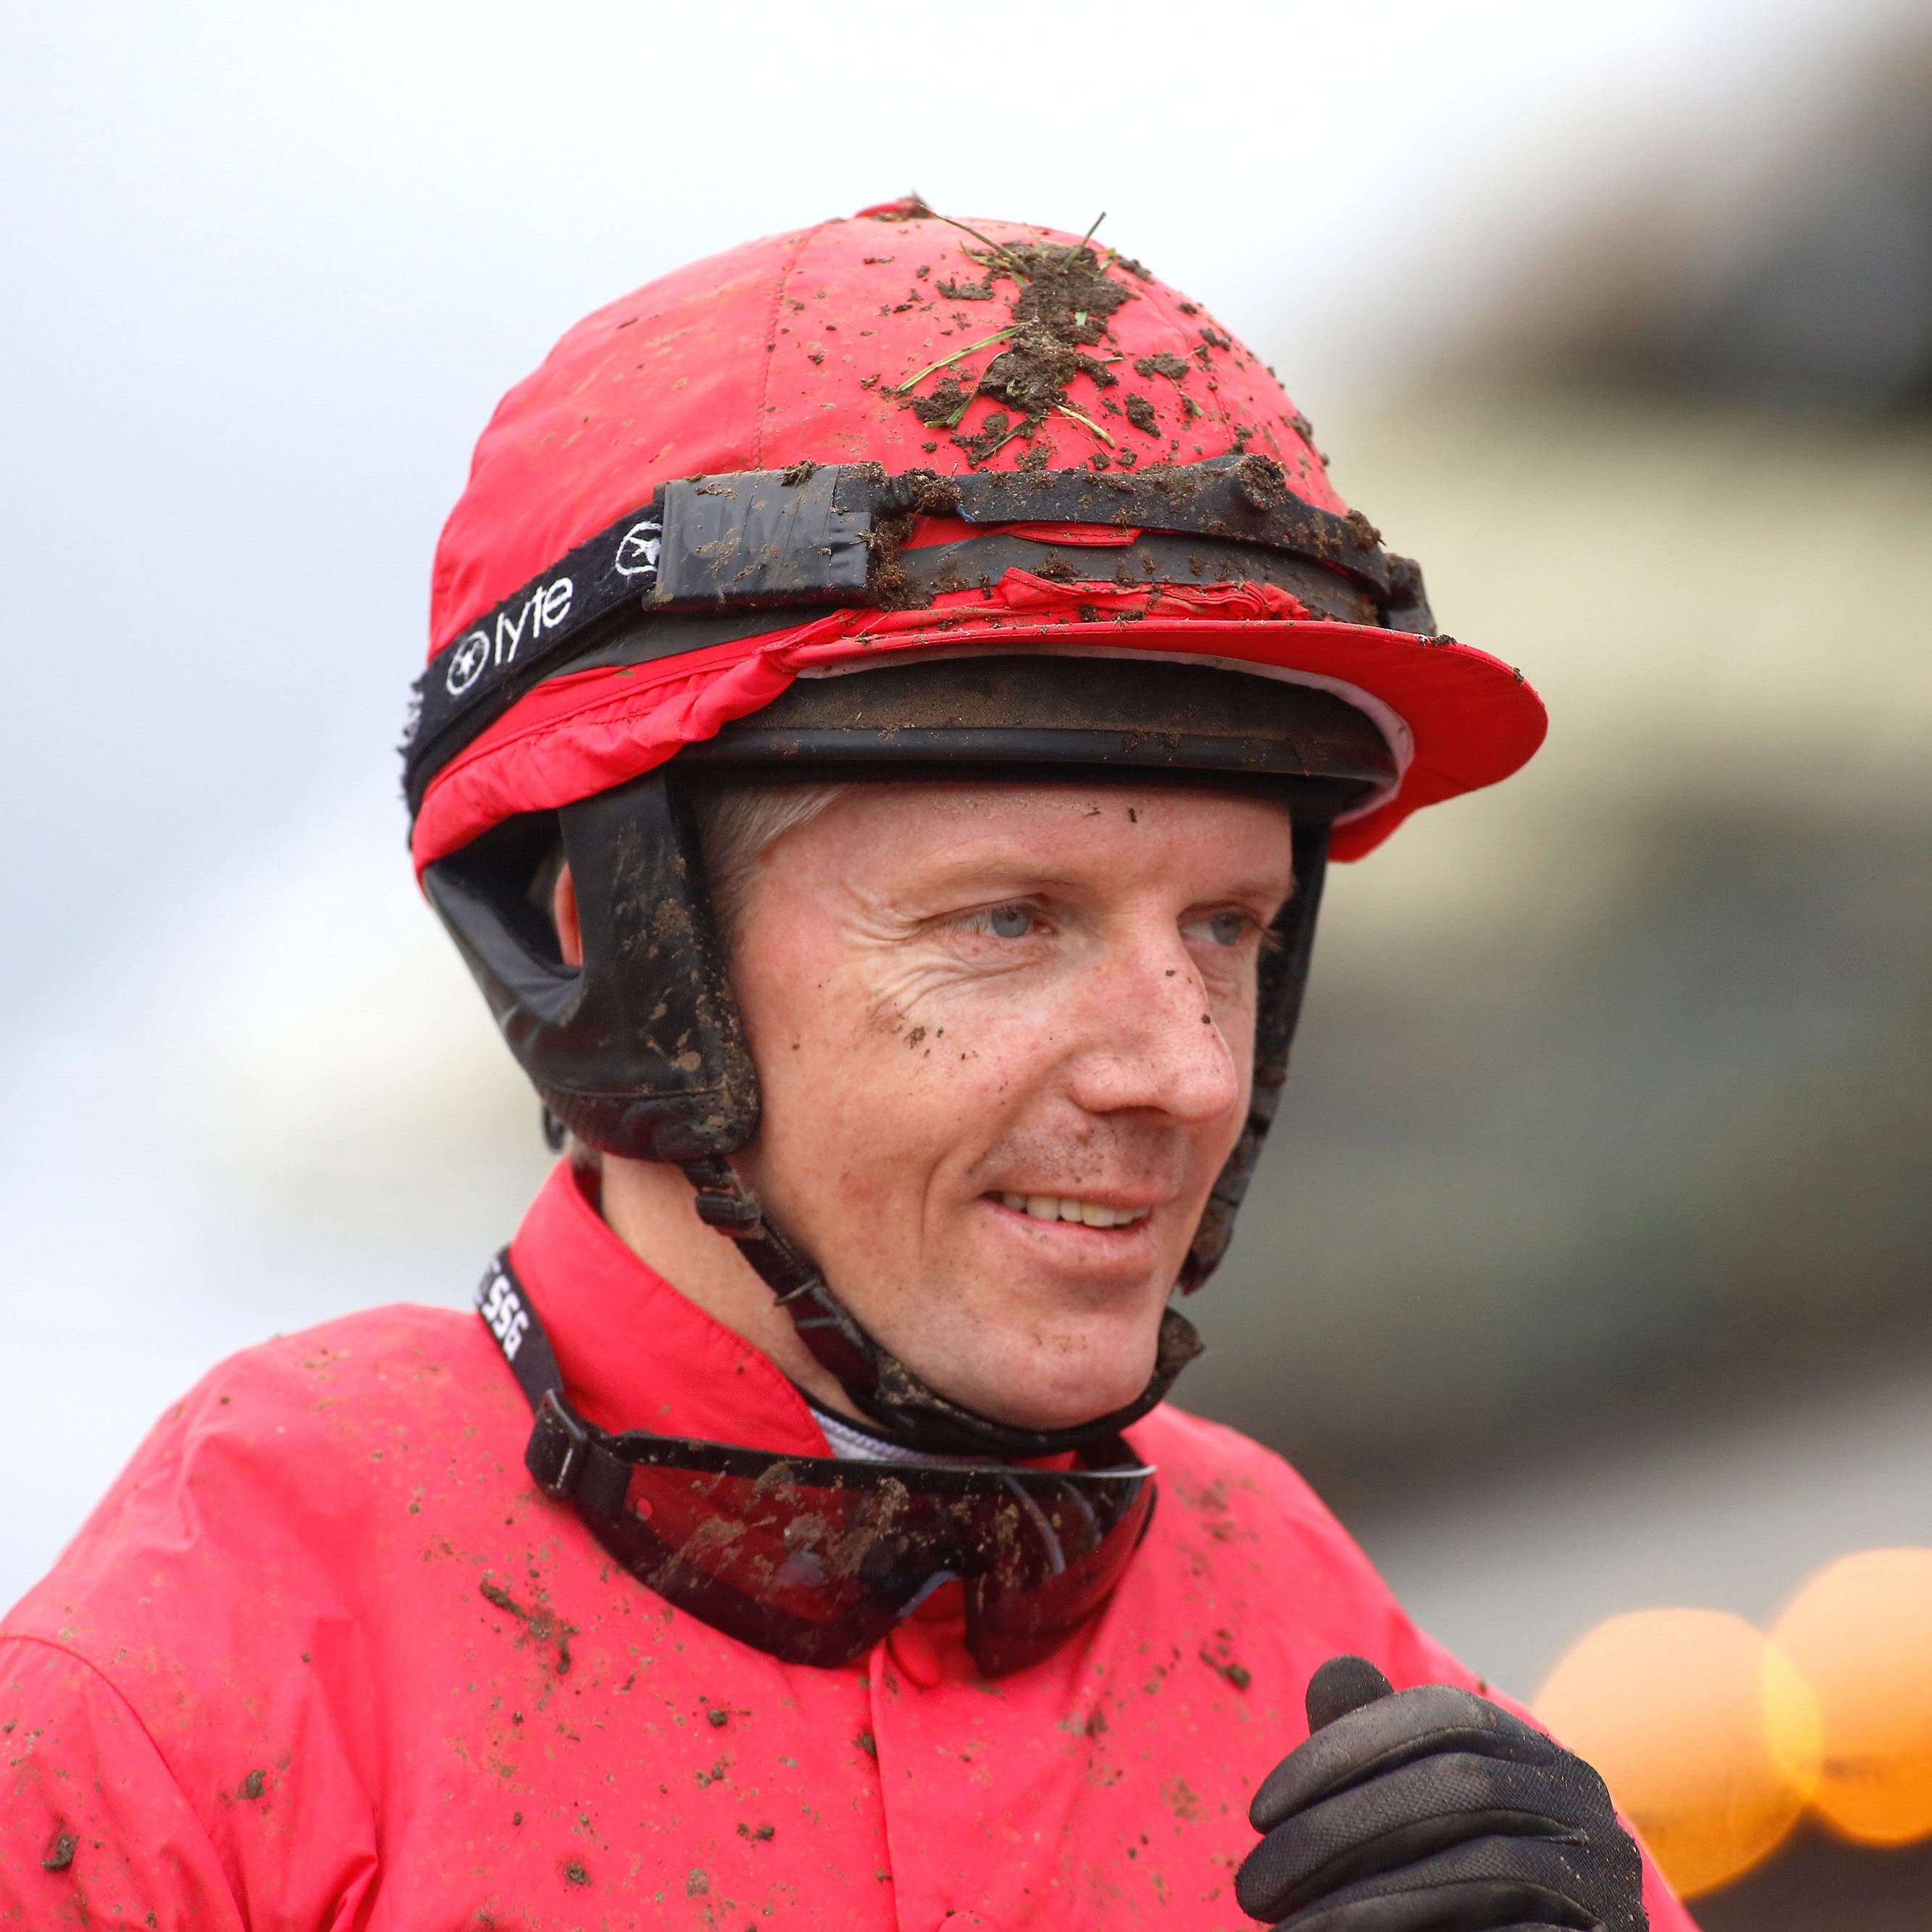 Noel Fehily brought the curtain down on his career on Saturday